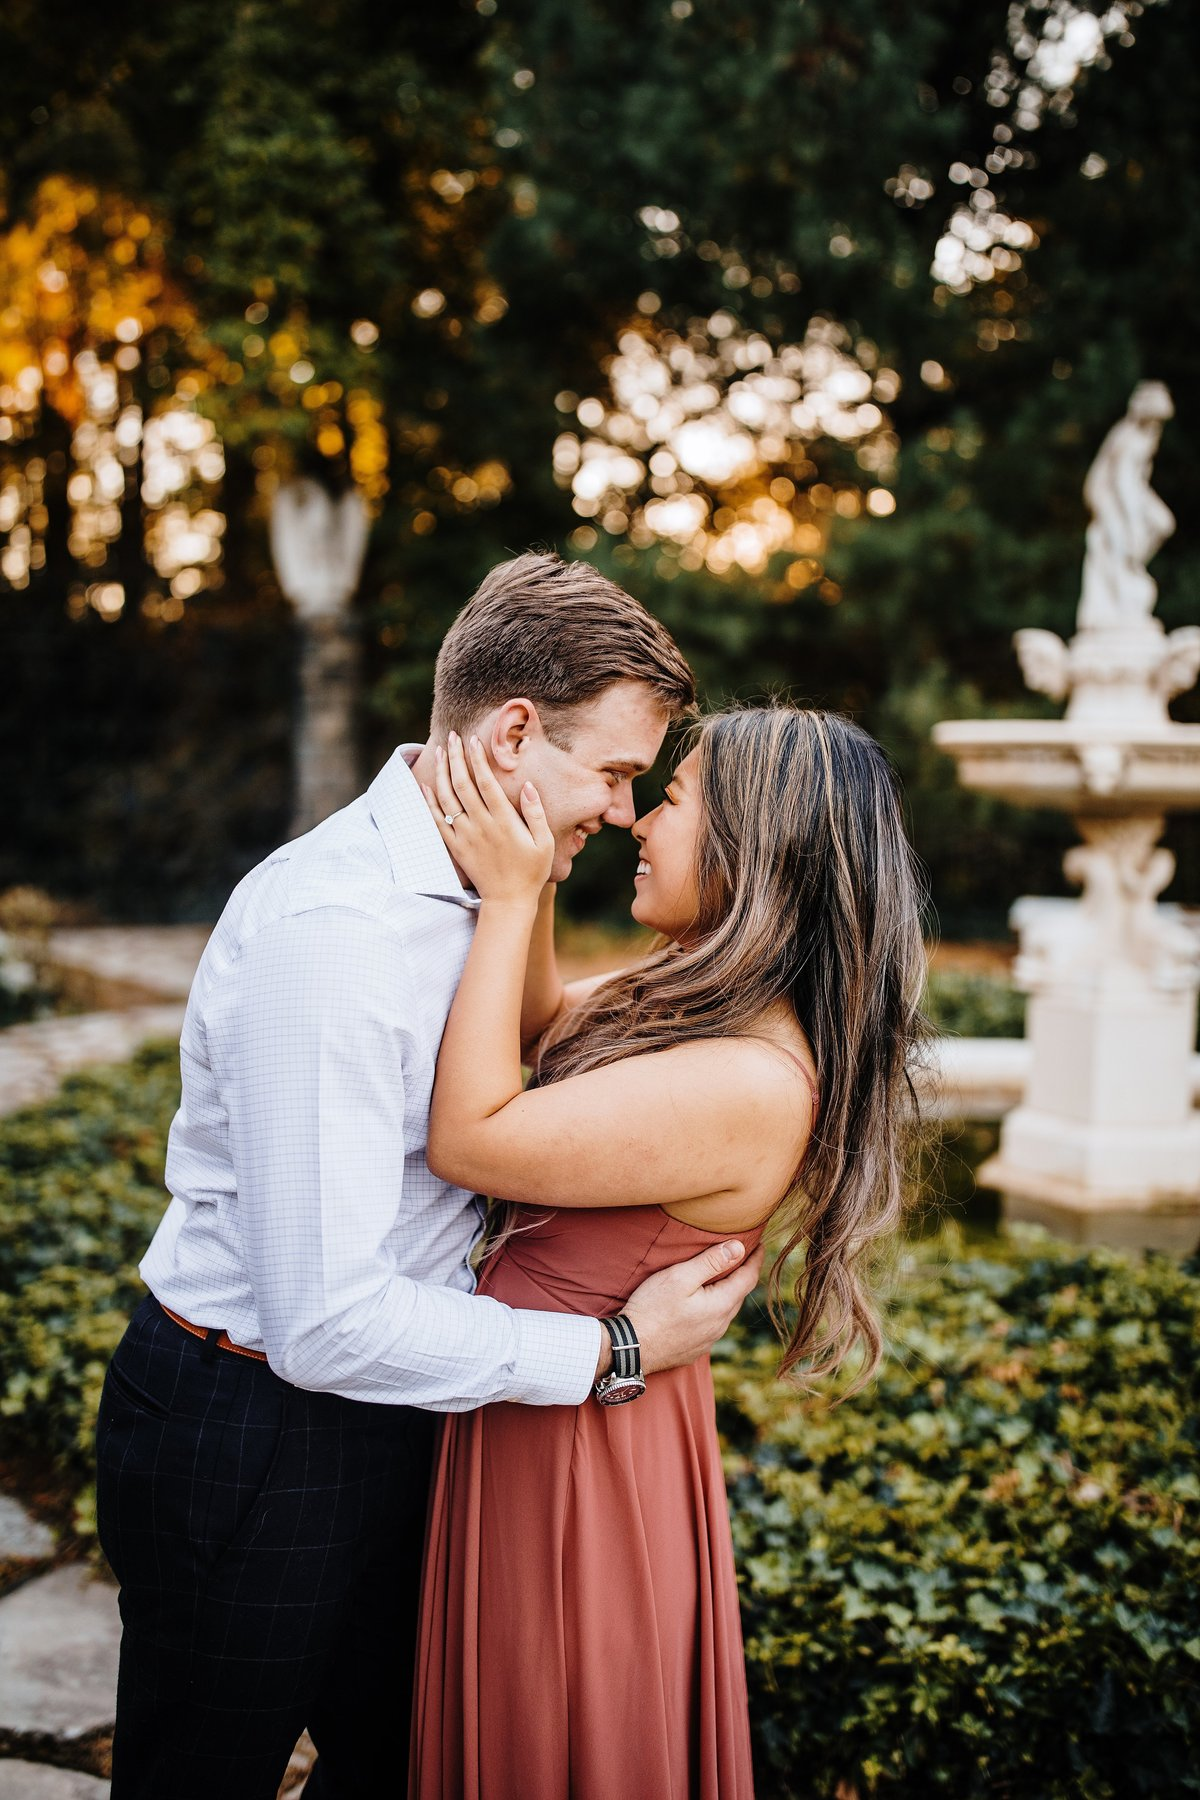 marian-coffin-gardens-engagement-photos-wilmington-delaware_0001